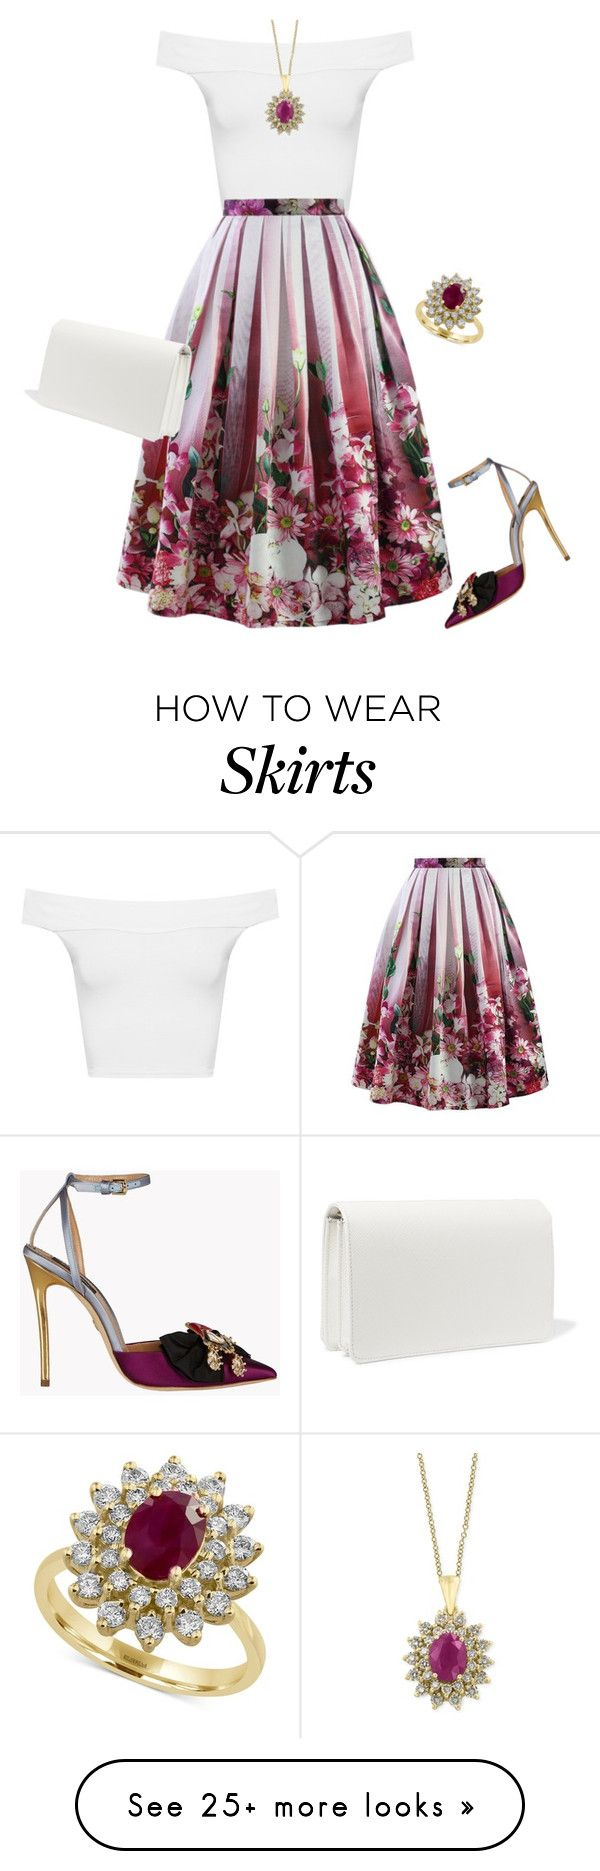 """floral skirt"" by natalyag on Polyvore featuring WearAll, Chicwish, Dsquared2, Effy Jewelry and Prada"